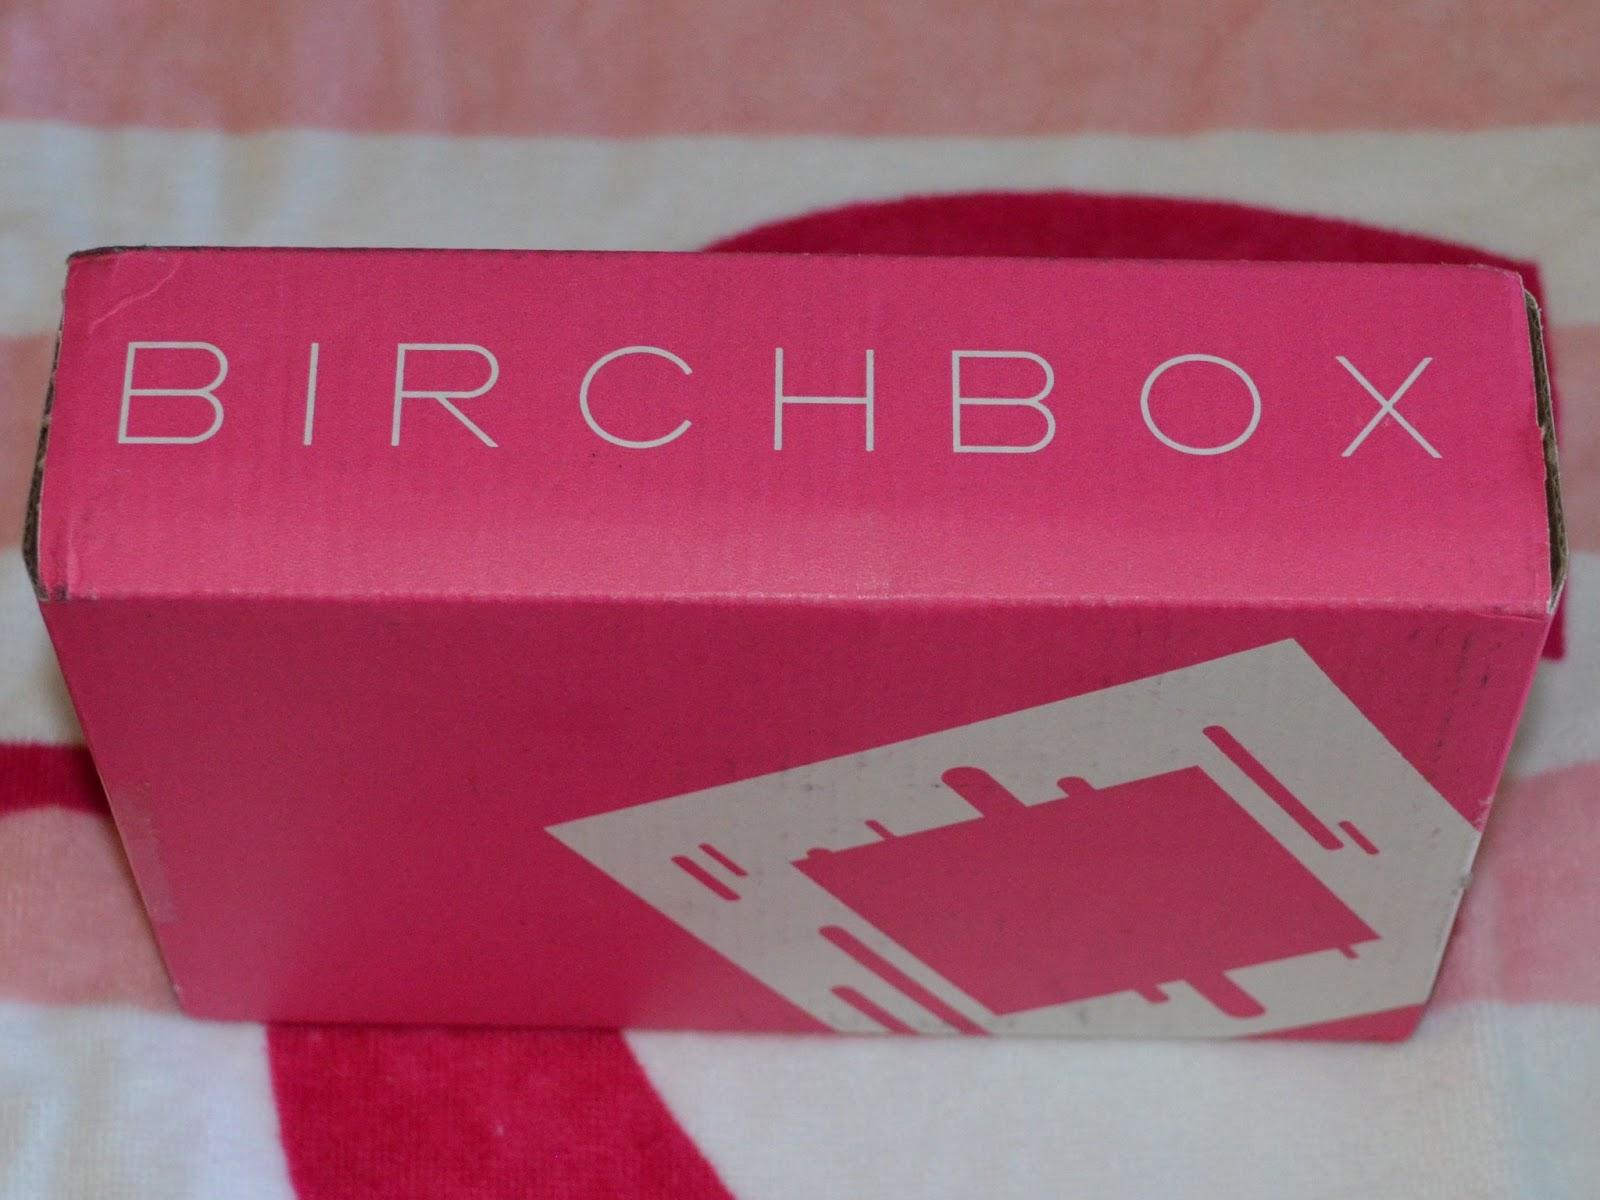 For My Birthday Earlier In May Fiance Signed Me Up A Six Month Birchbox Gift Subscription I Received Welcome Box This Past Friday And Was So